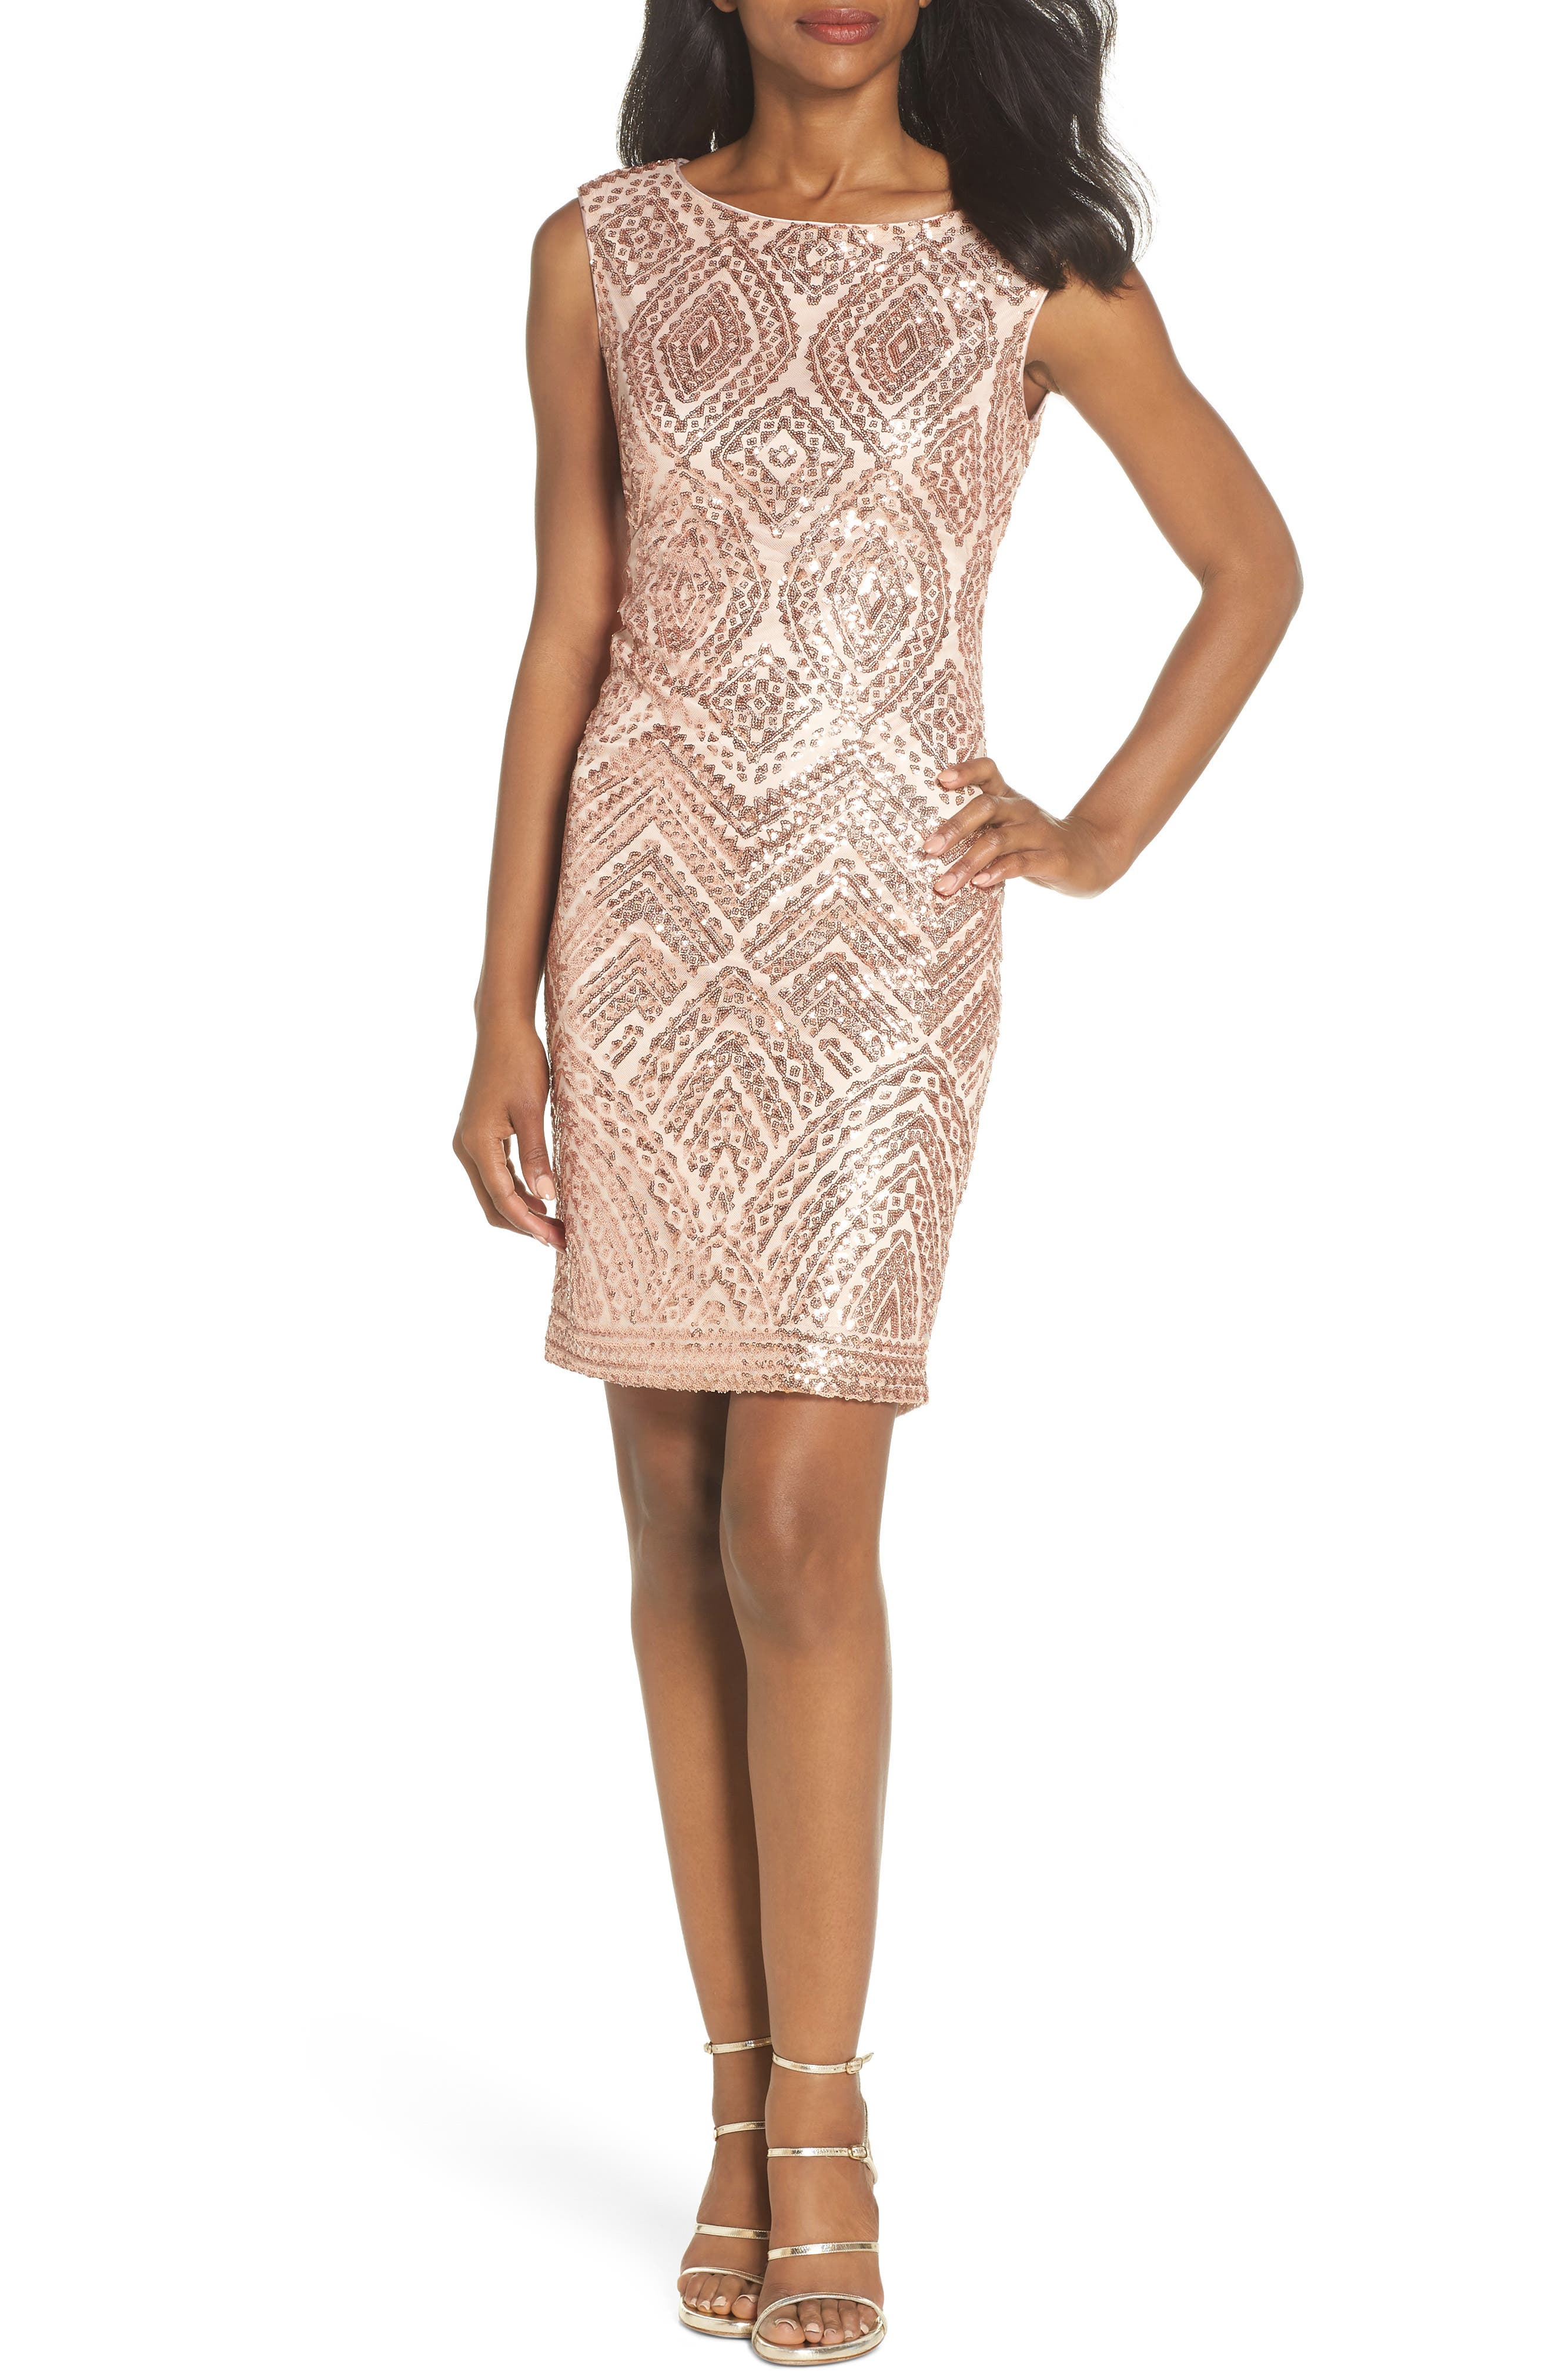 VINCE CAMUTO,                             Sequin Embellished Cocktail Dress,                             Main thumbnail 1, color,                             254